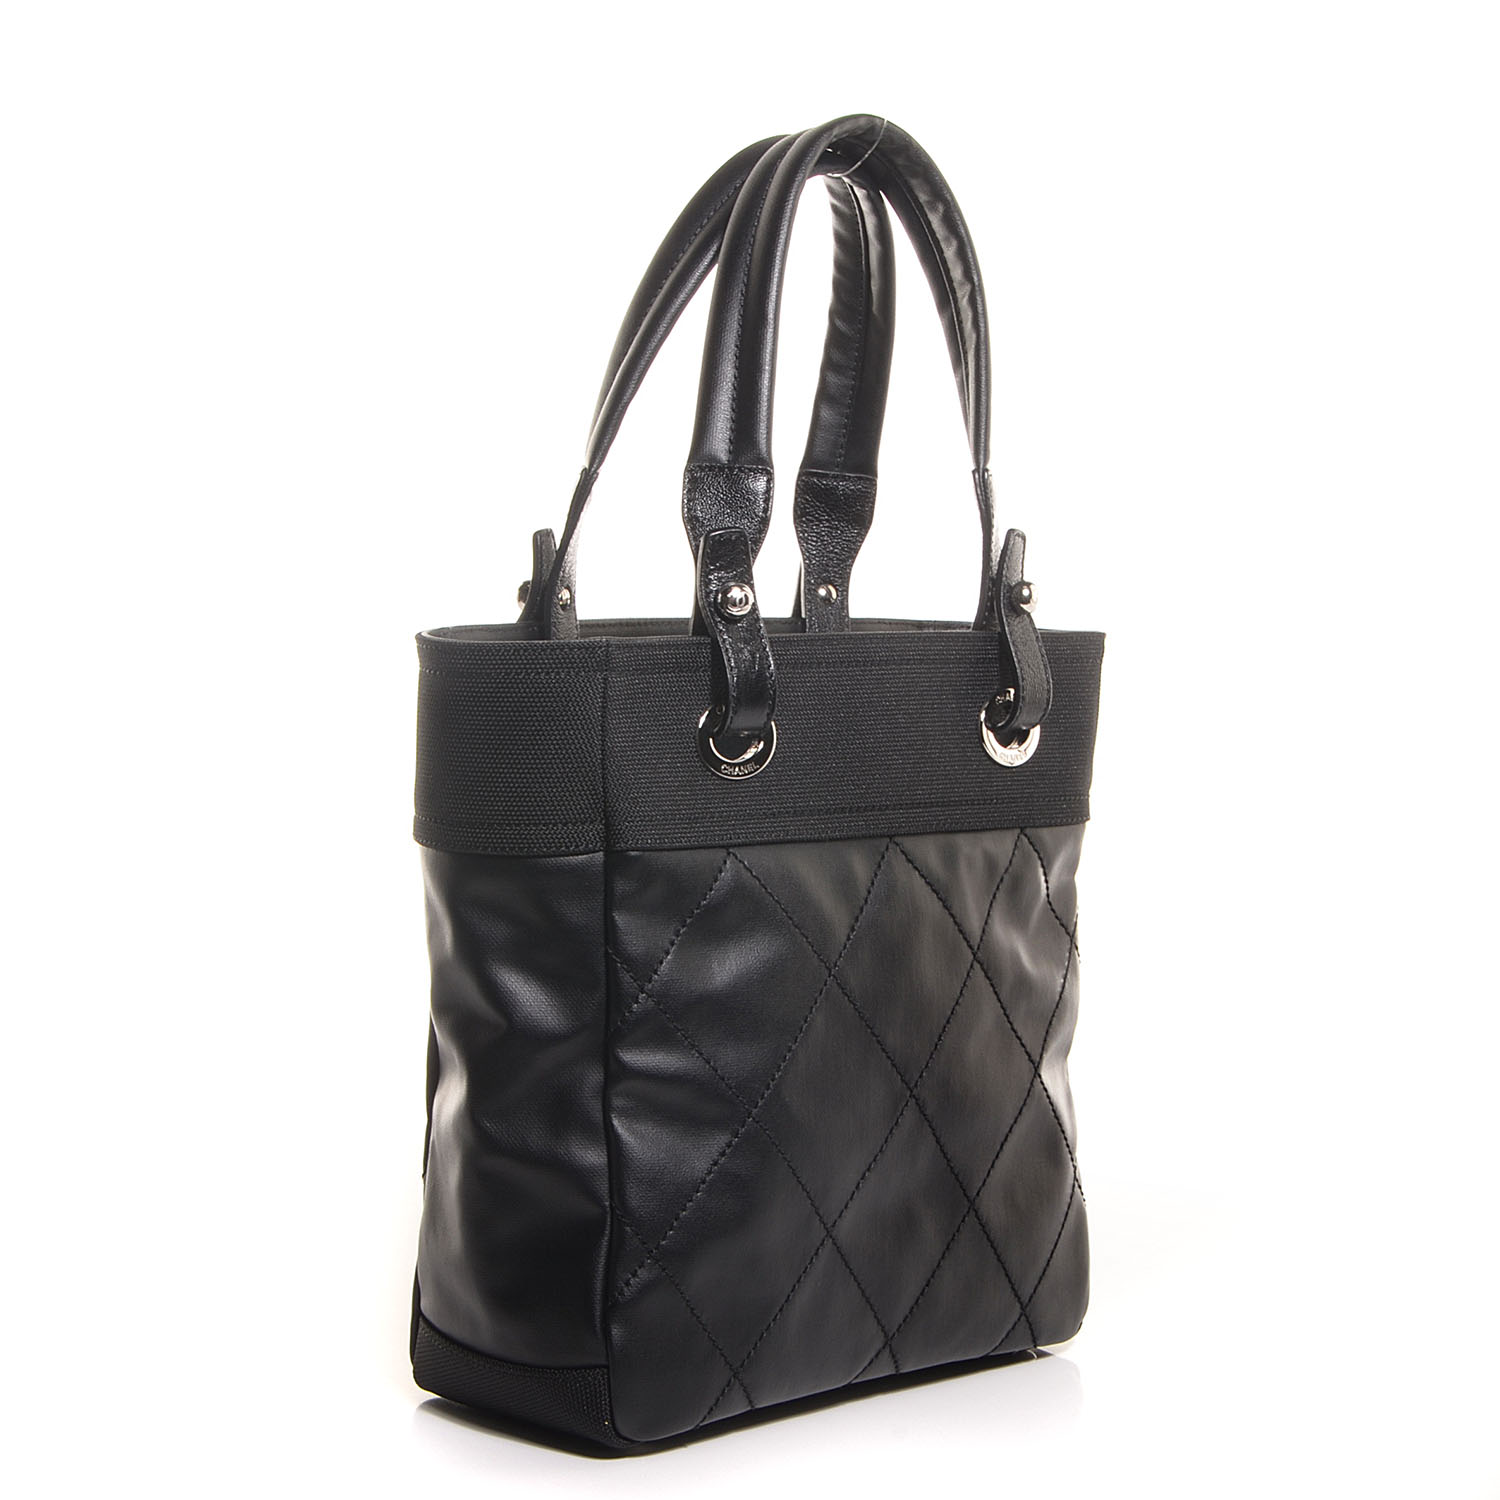 4ed9daaea87d CHANEL Coated Canvas Quilted Small Paris Biarritz Tote Black 90527